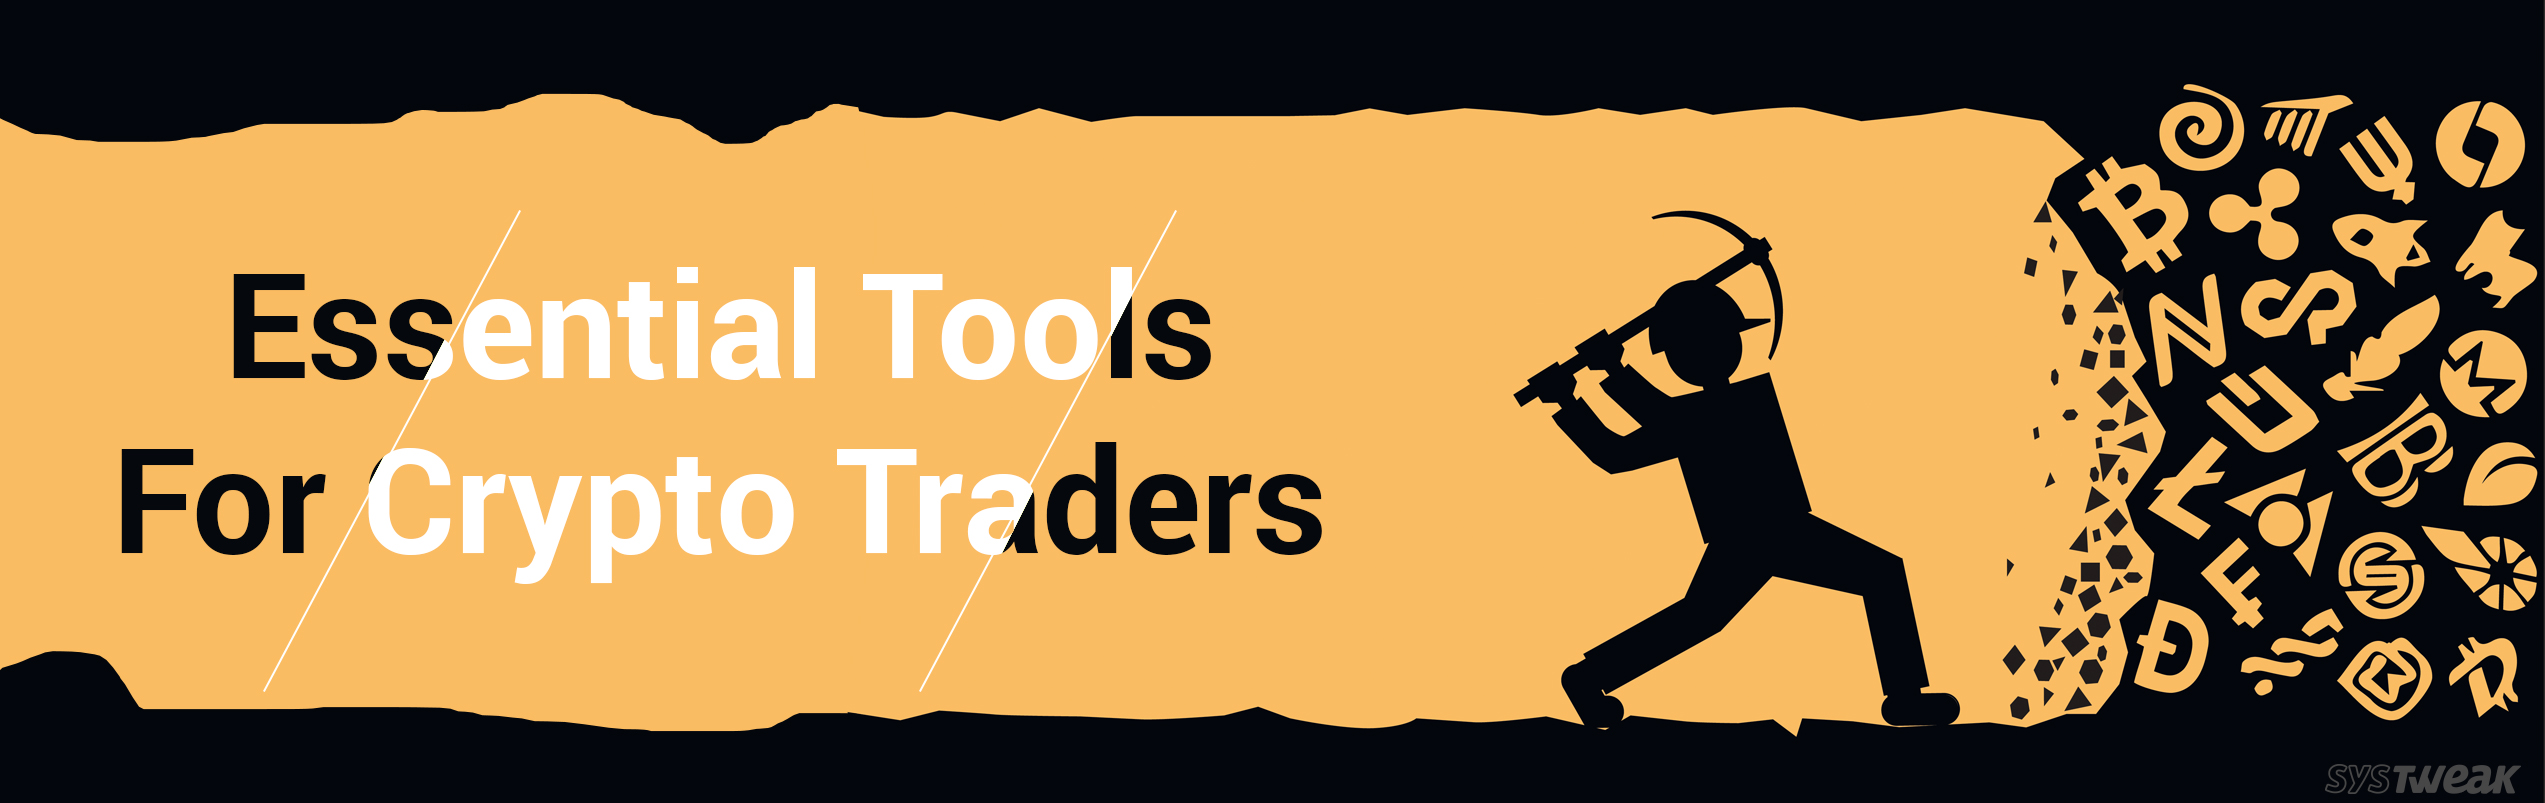 Four Essential Tools For Every Cryptocurrency Trader & Investor